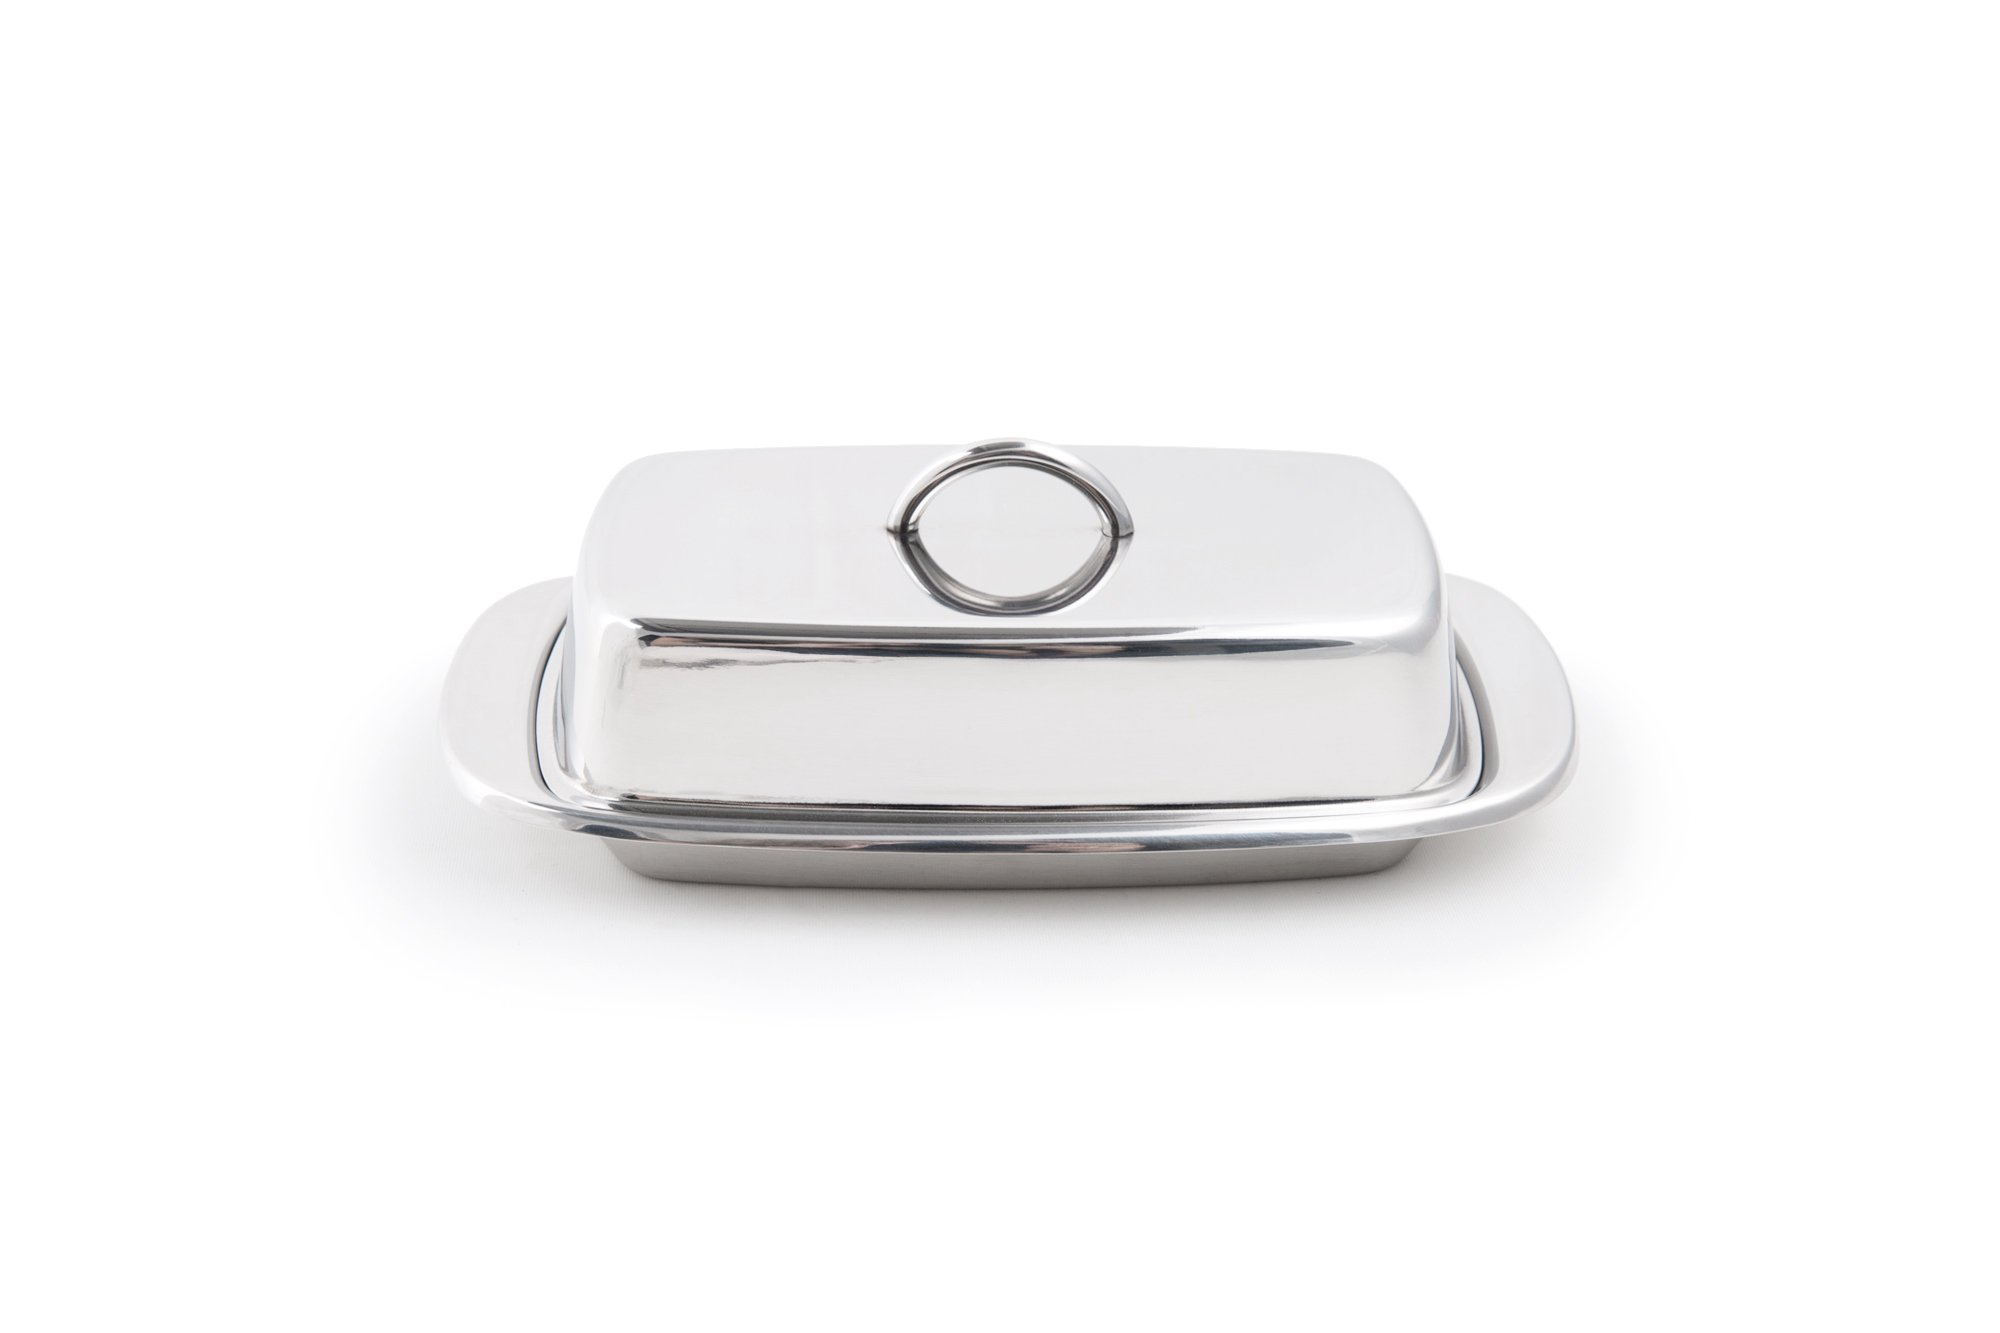 Fox Run 6510 Butter Dish with Lid, Stainless Steel